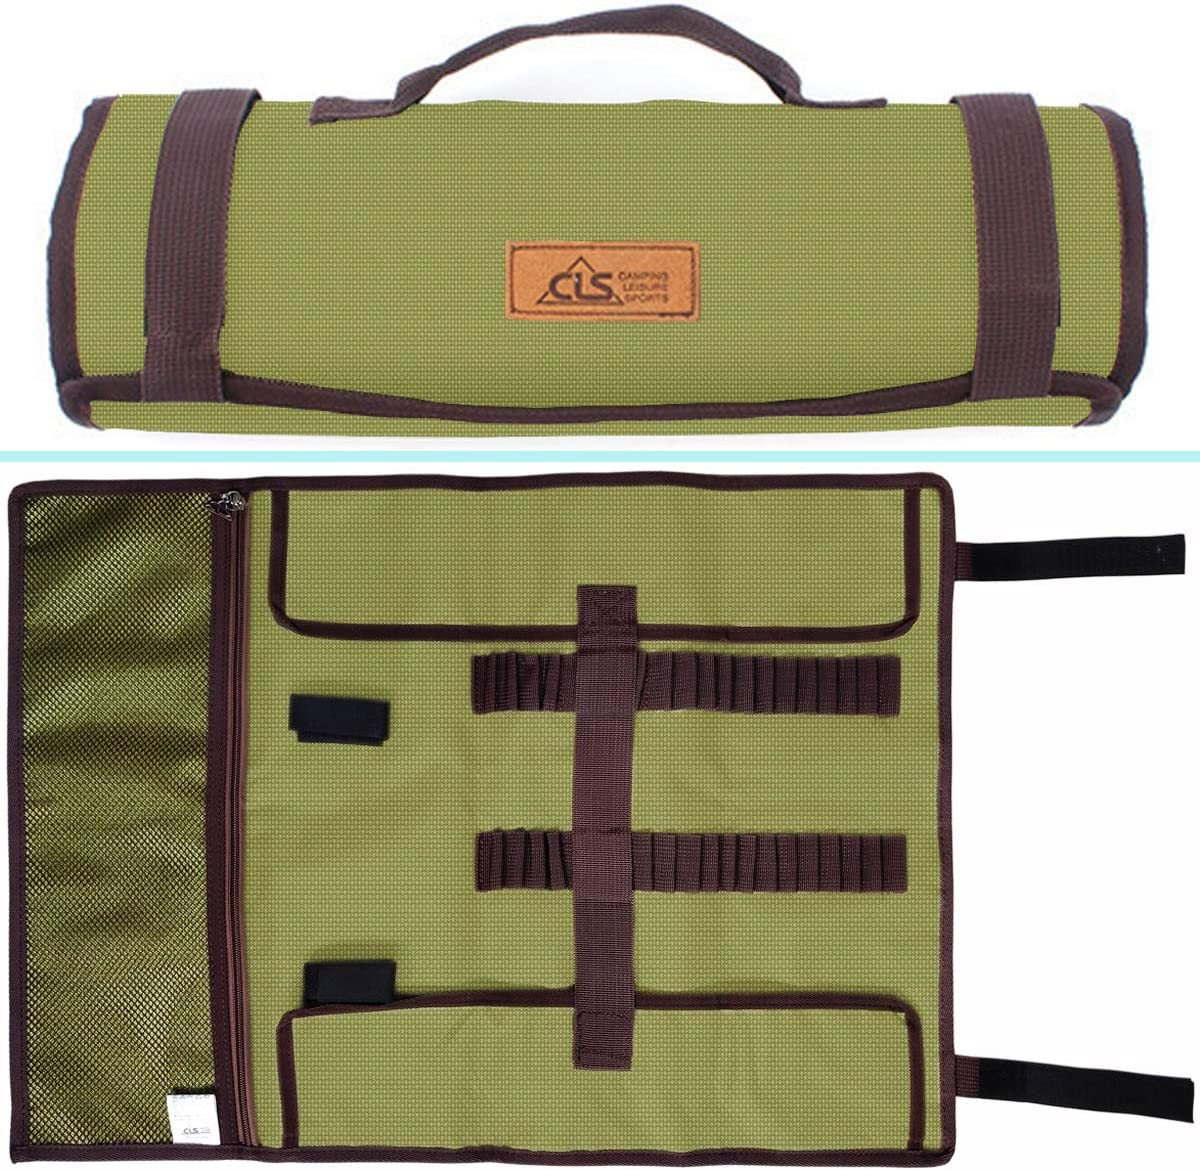 Bag Camping Tent Stakes Heavy Duty Nylon Sack Waterproof Pocket Ditty Camp Accesorries Storage Peg Bag